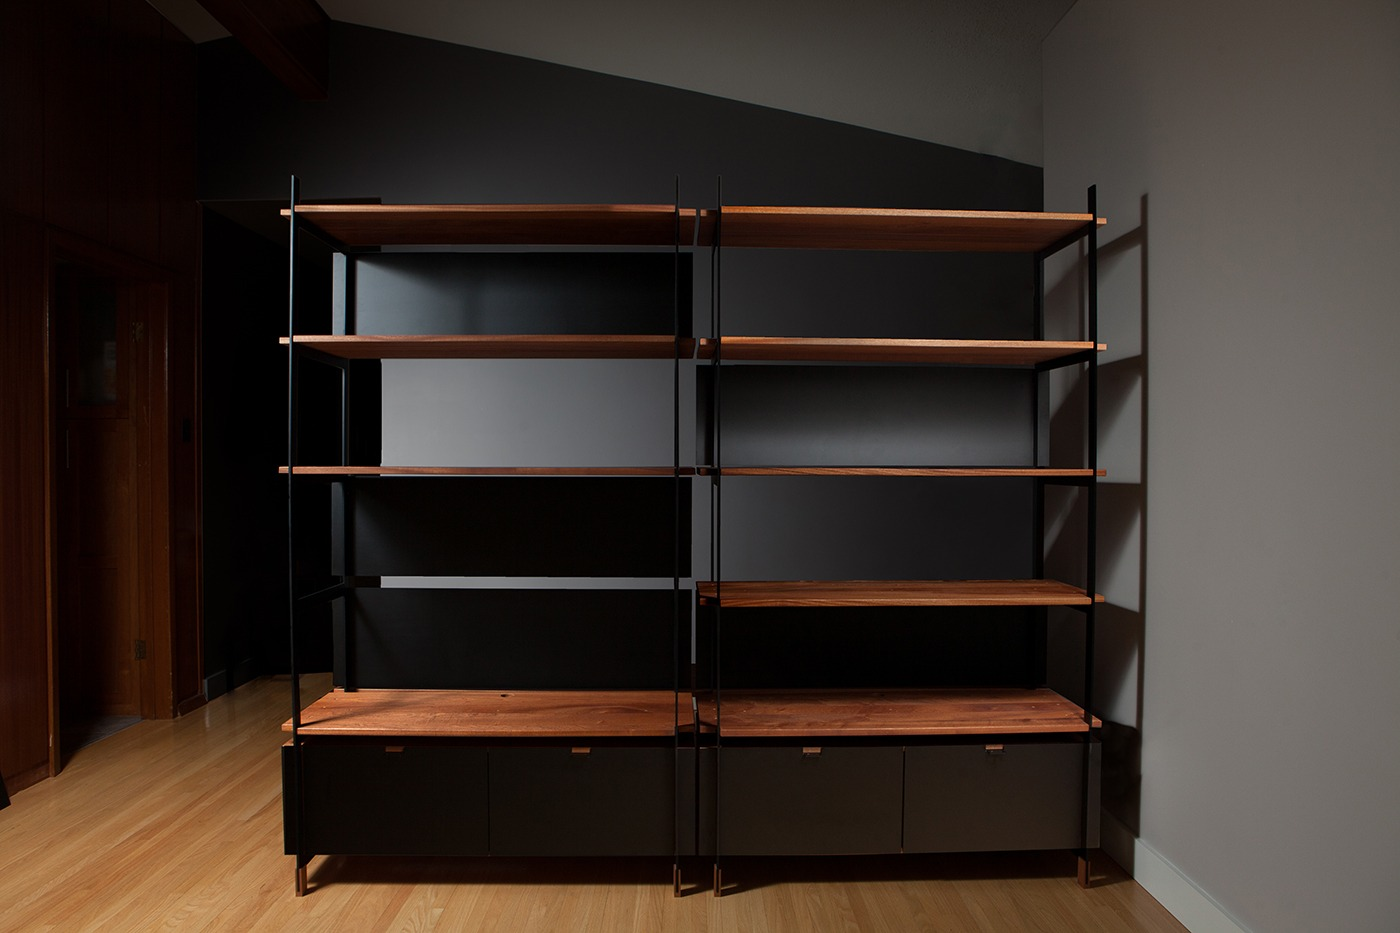 Design-Built Custom Shelf